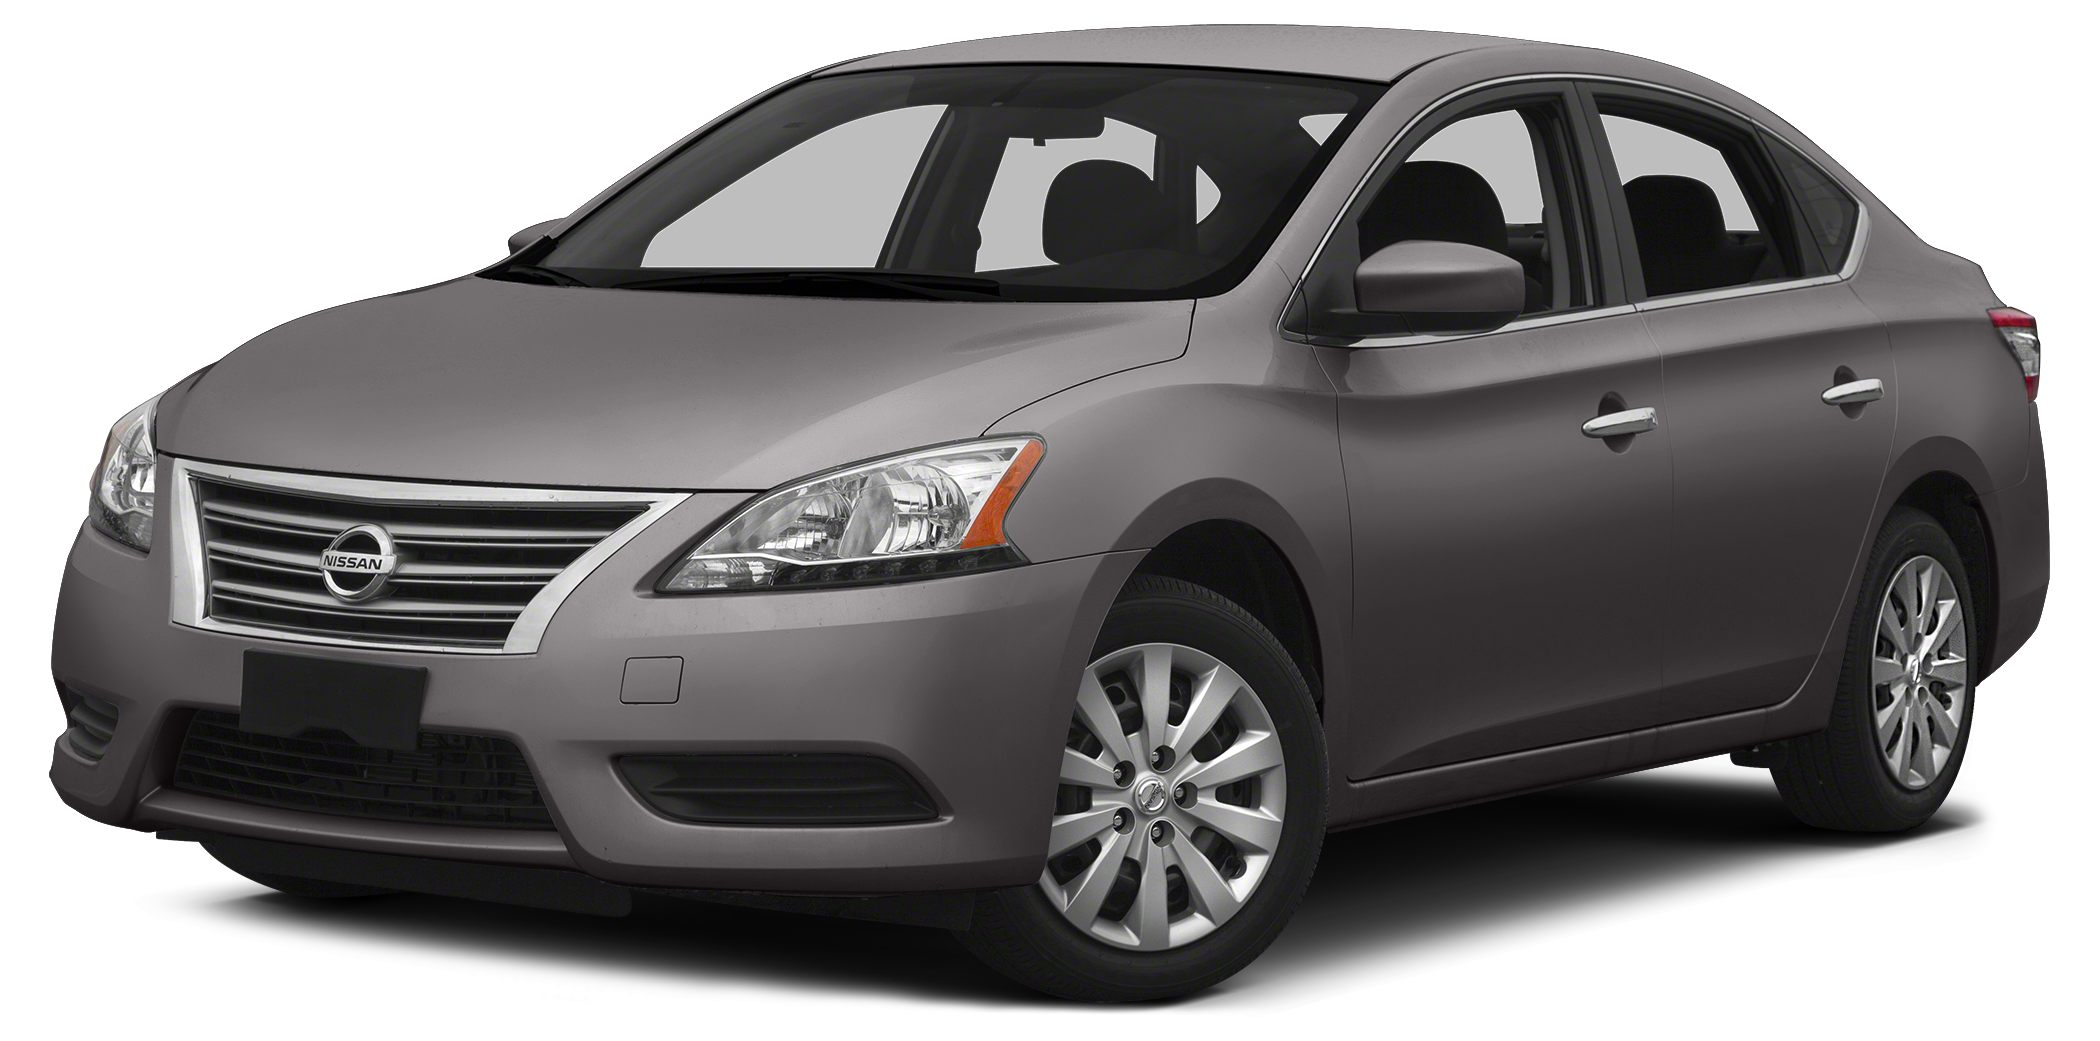 2014 Nissan Sentra S Nissan Certified CVT with Xtronic and Cloth Dont let the miles fool you